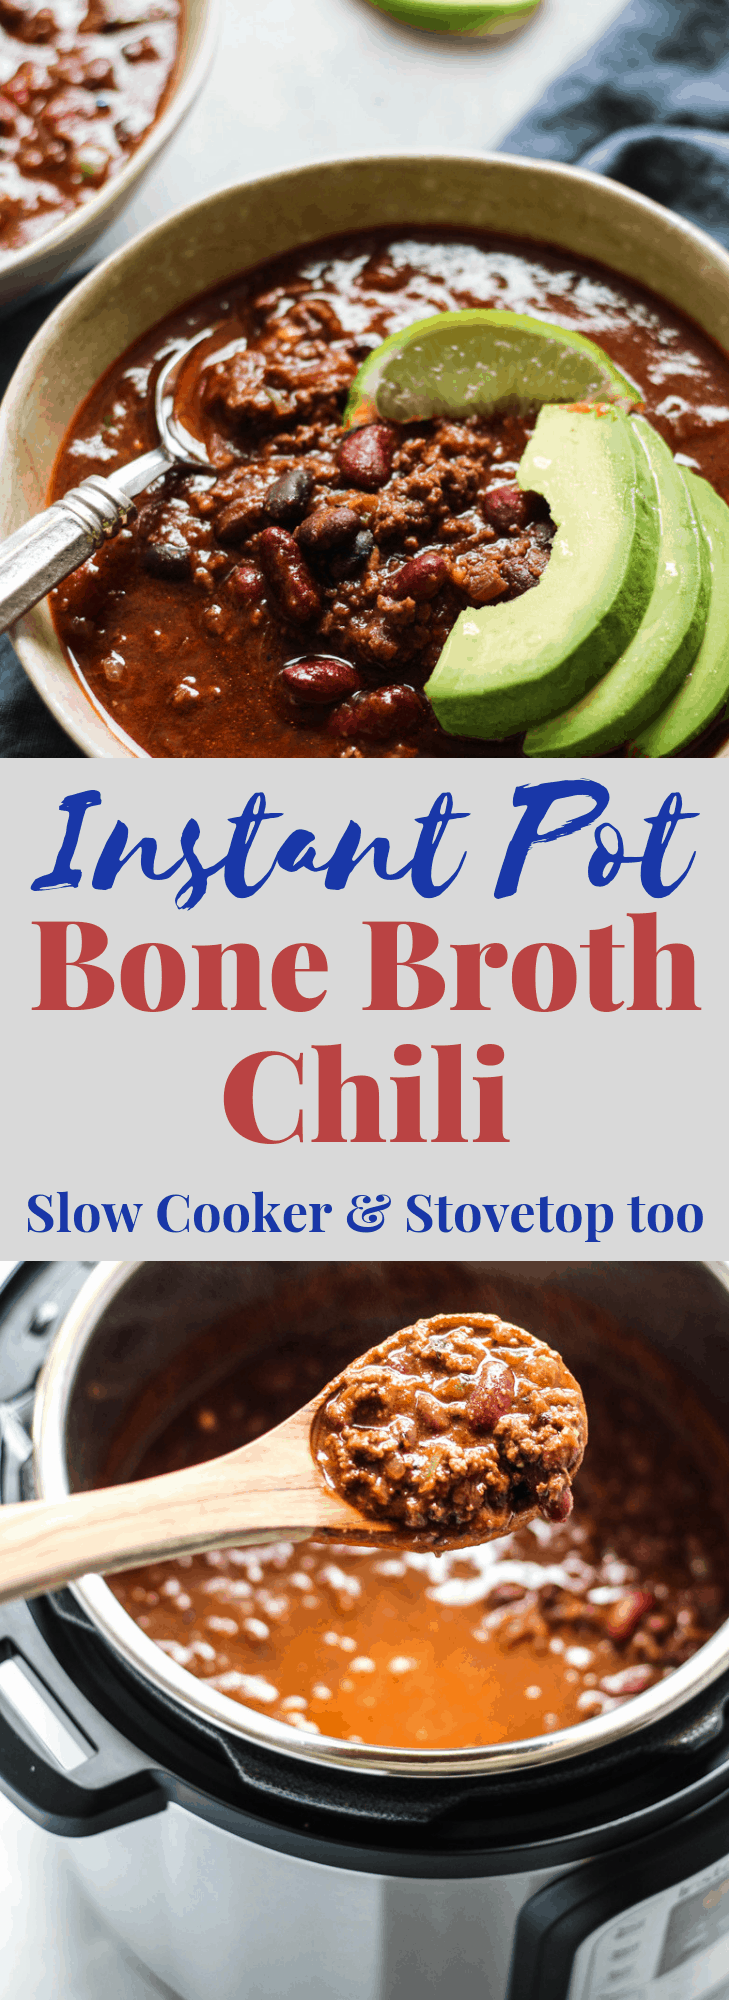 Soul-satisfying Instant Pot Chili Recipe with bone broth, plus stovetop and crockpot chili recipe methods. #chilirecipes #bonebroth